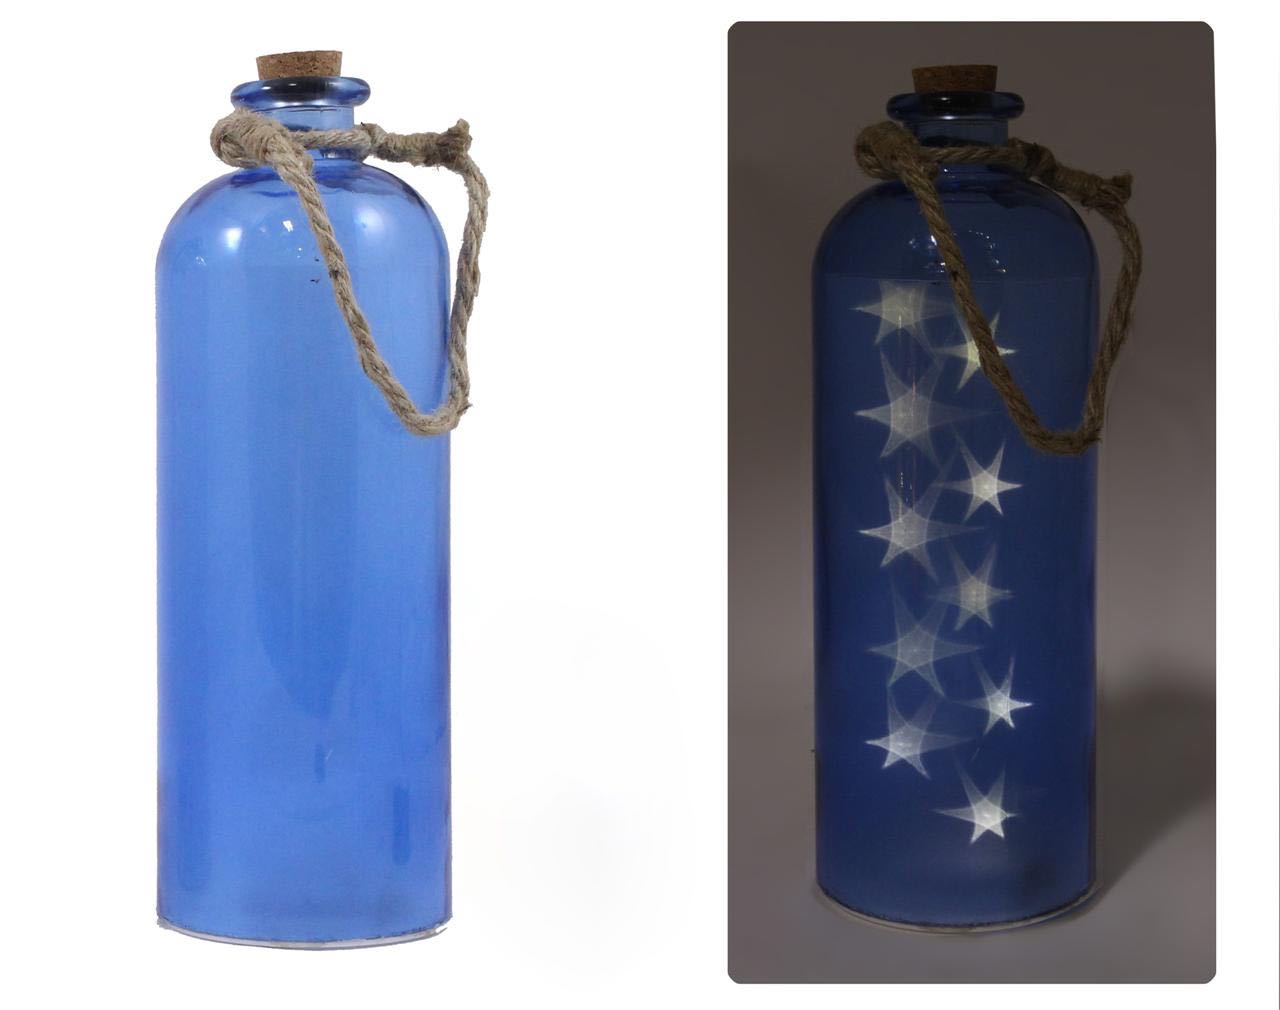 LED Blue Bottle with Star Reflections